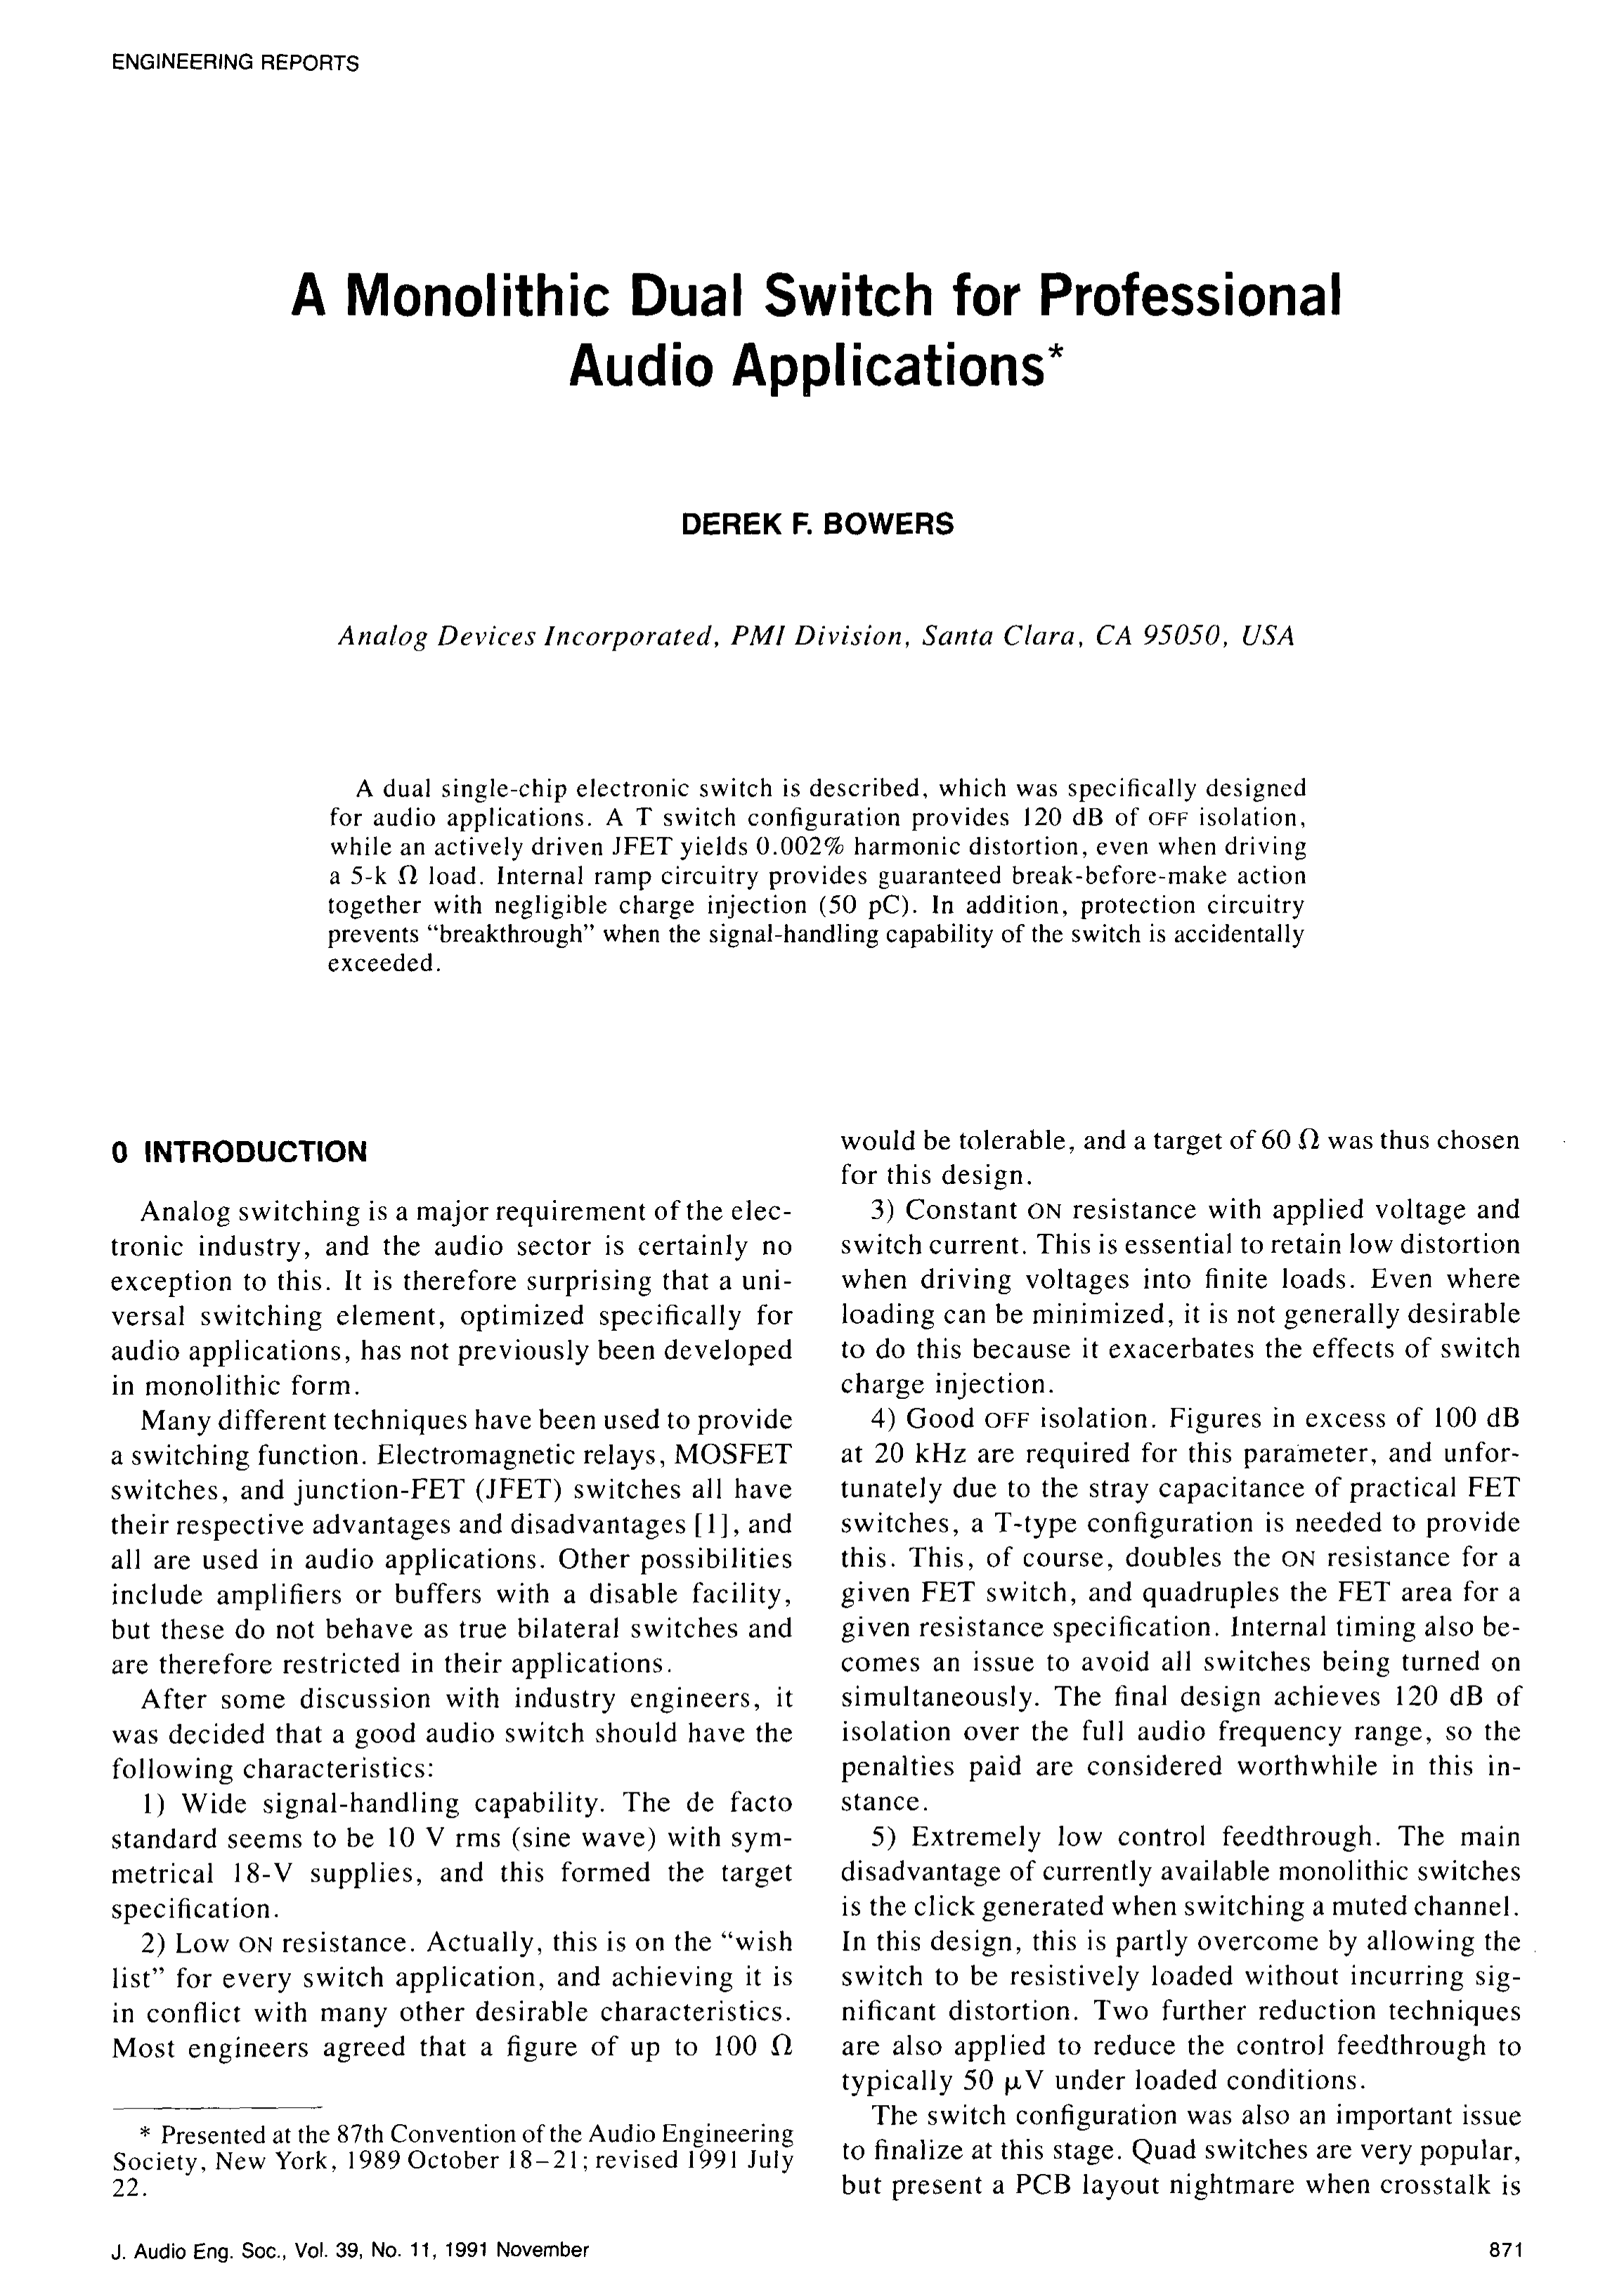 Aes E Library A Monolithic Dual Switch For Professional Audio Silicon Bilateral Applications